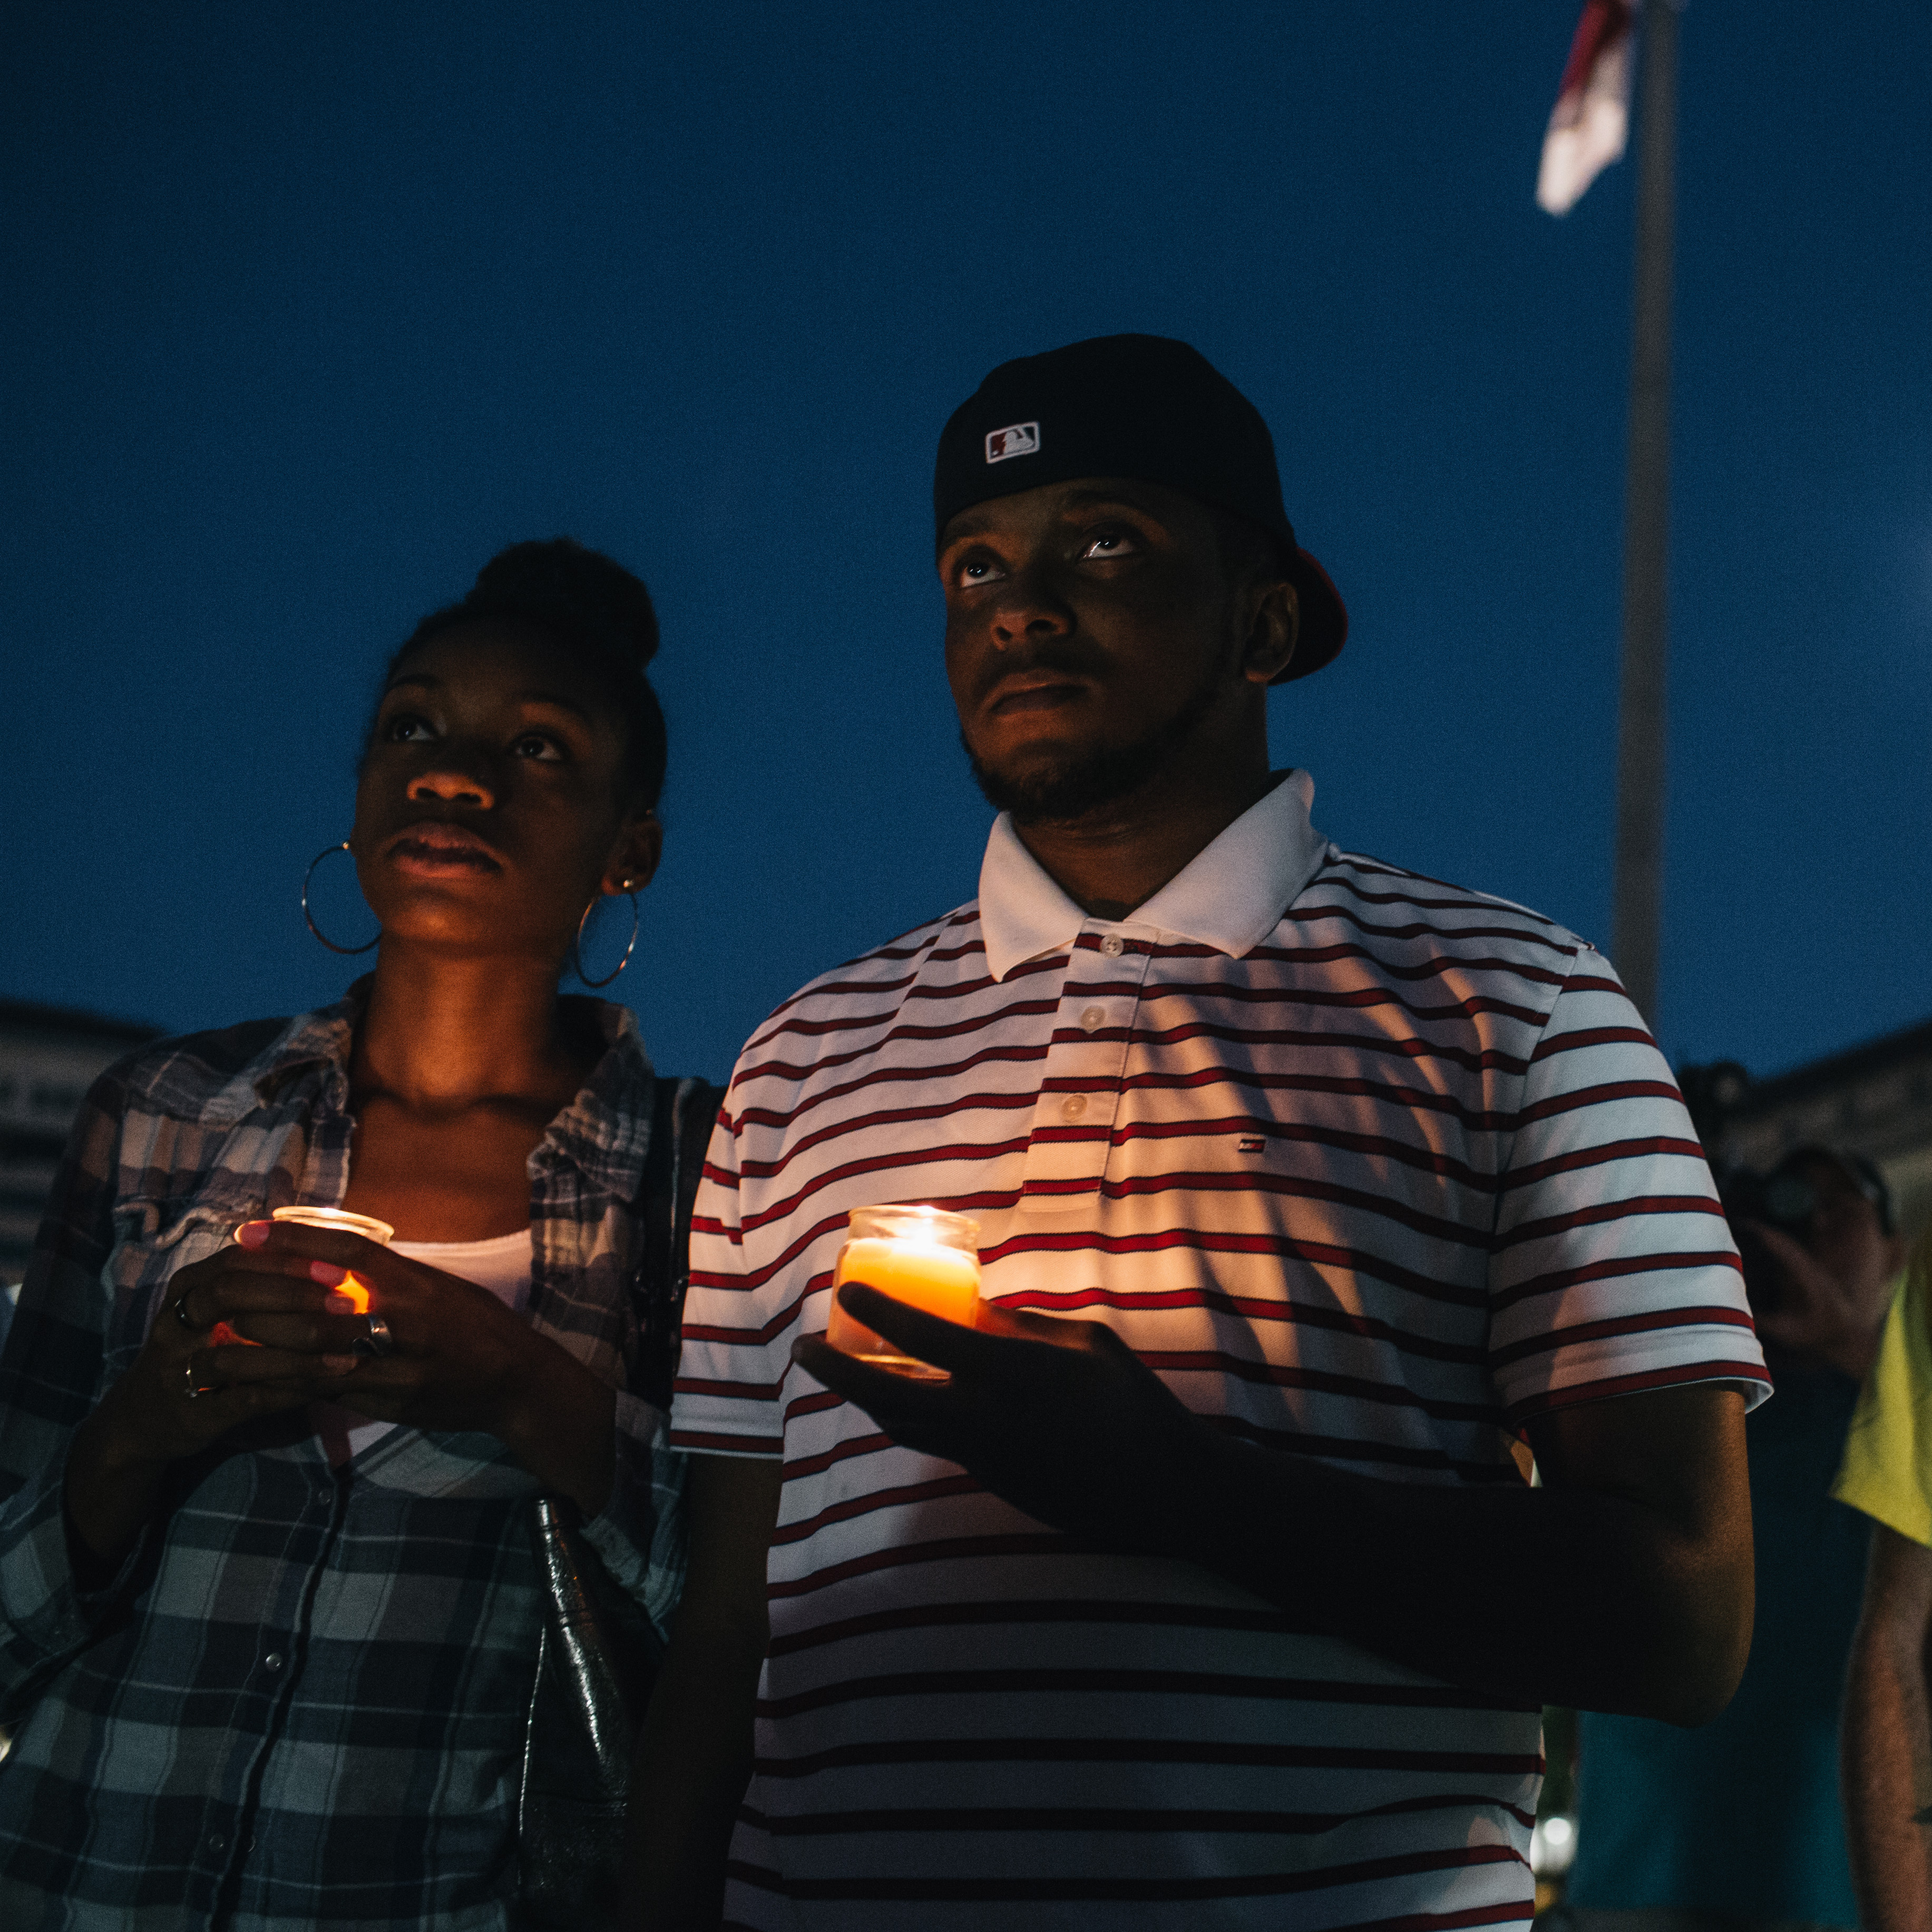 Brittany Carter, of Bowie, MD., (left) Jibri Johnson, of Landon, MD., (center) and Bryan Beard of Washington D.C. hold candles in remembrance of the 12 victims killed in a shooting at the Washington Navy Yard earlier in the day.